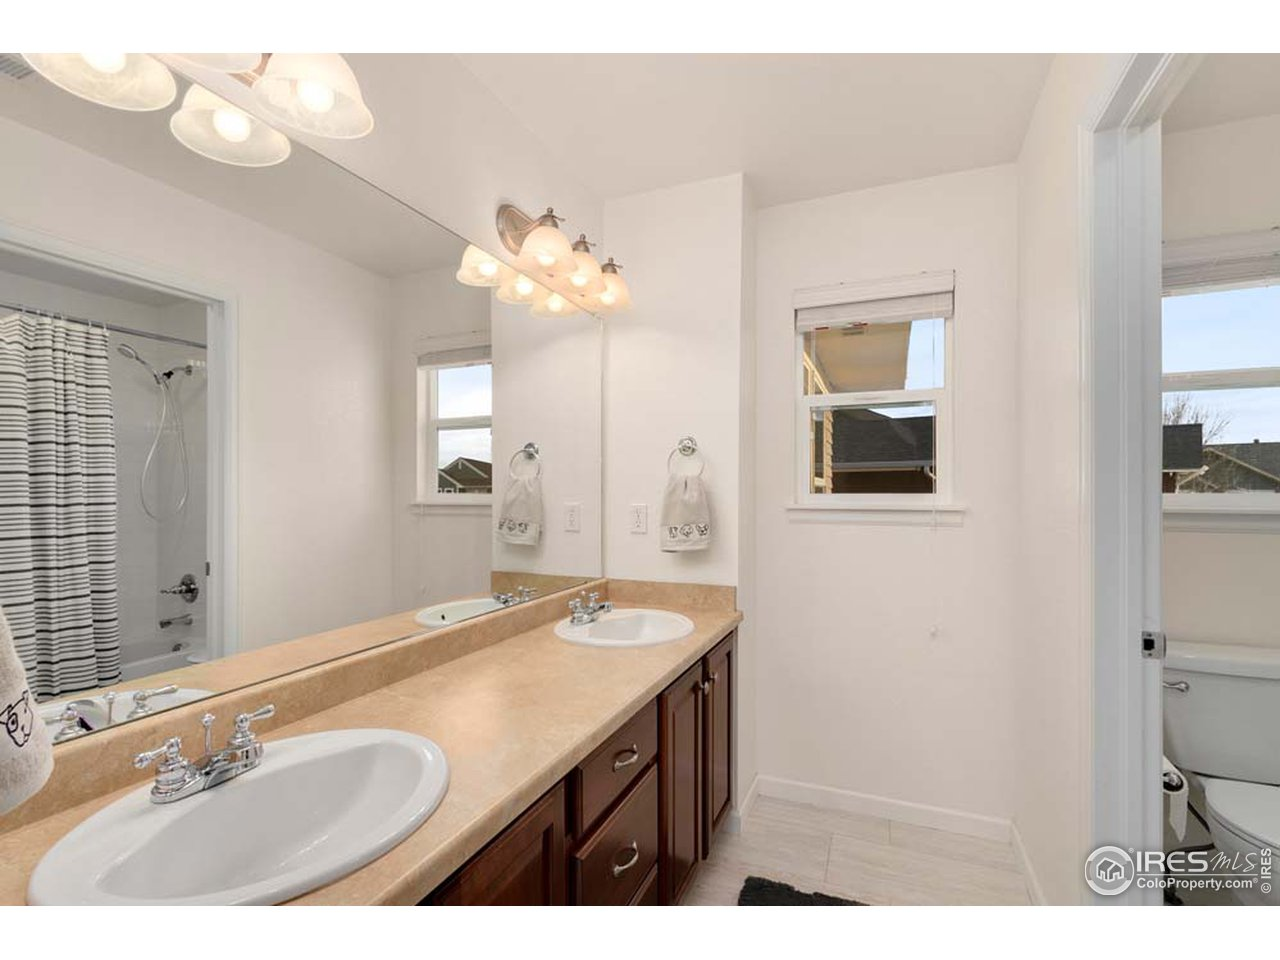 Full bath with double sinks